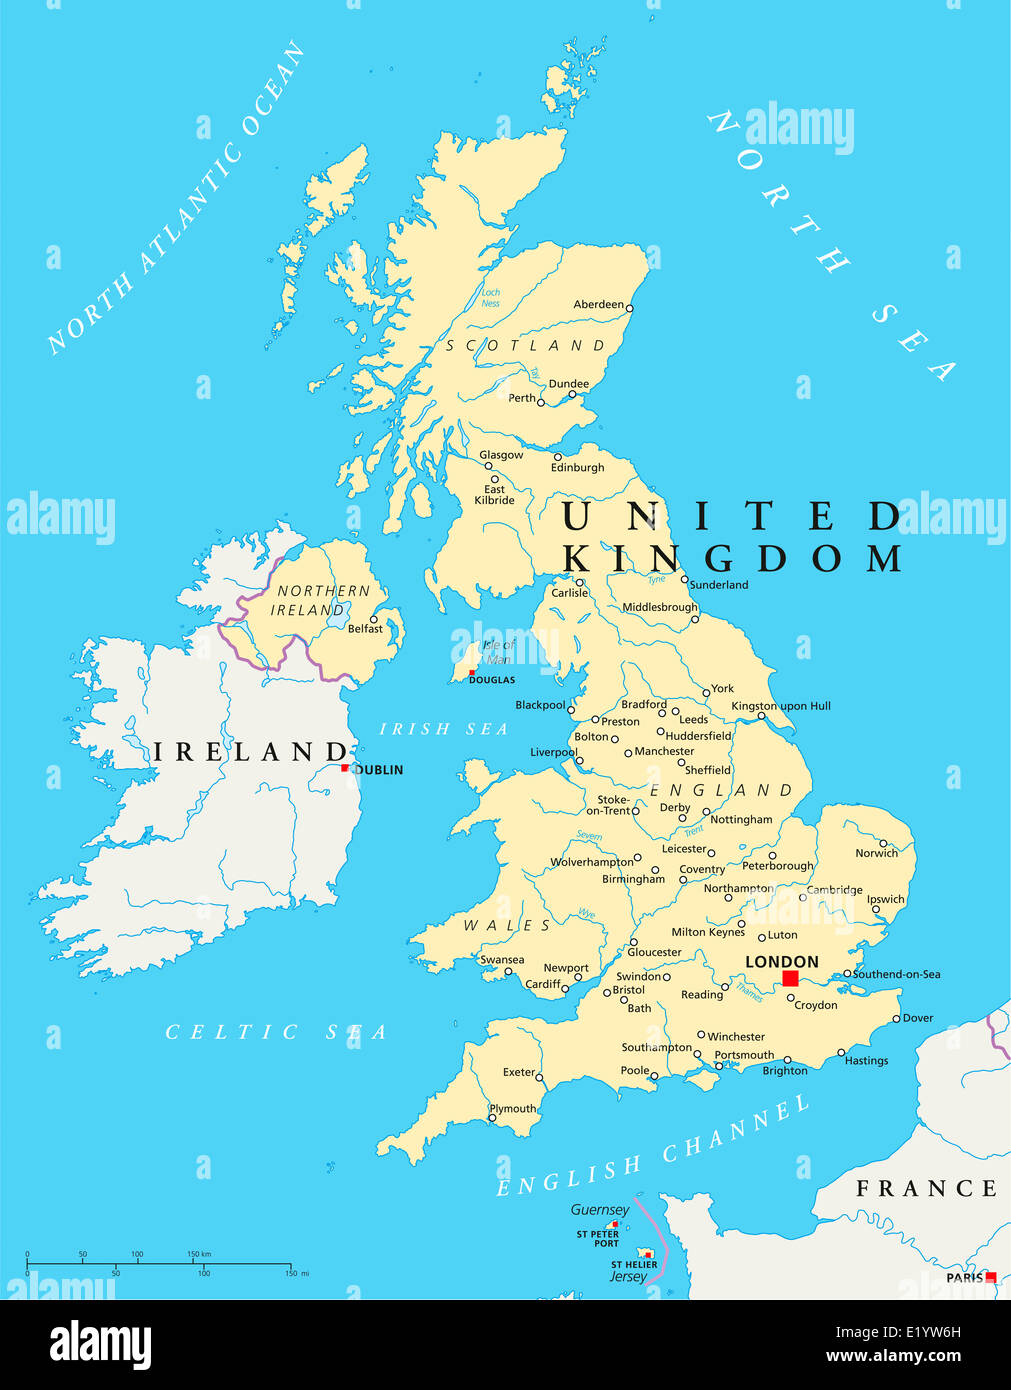 Political Map Of Great Britain.United Kingdom Political Map With Capital London National Borders